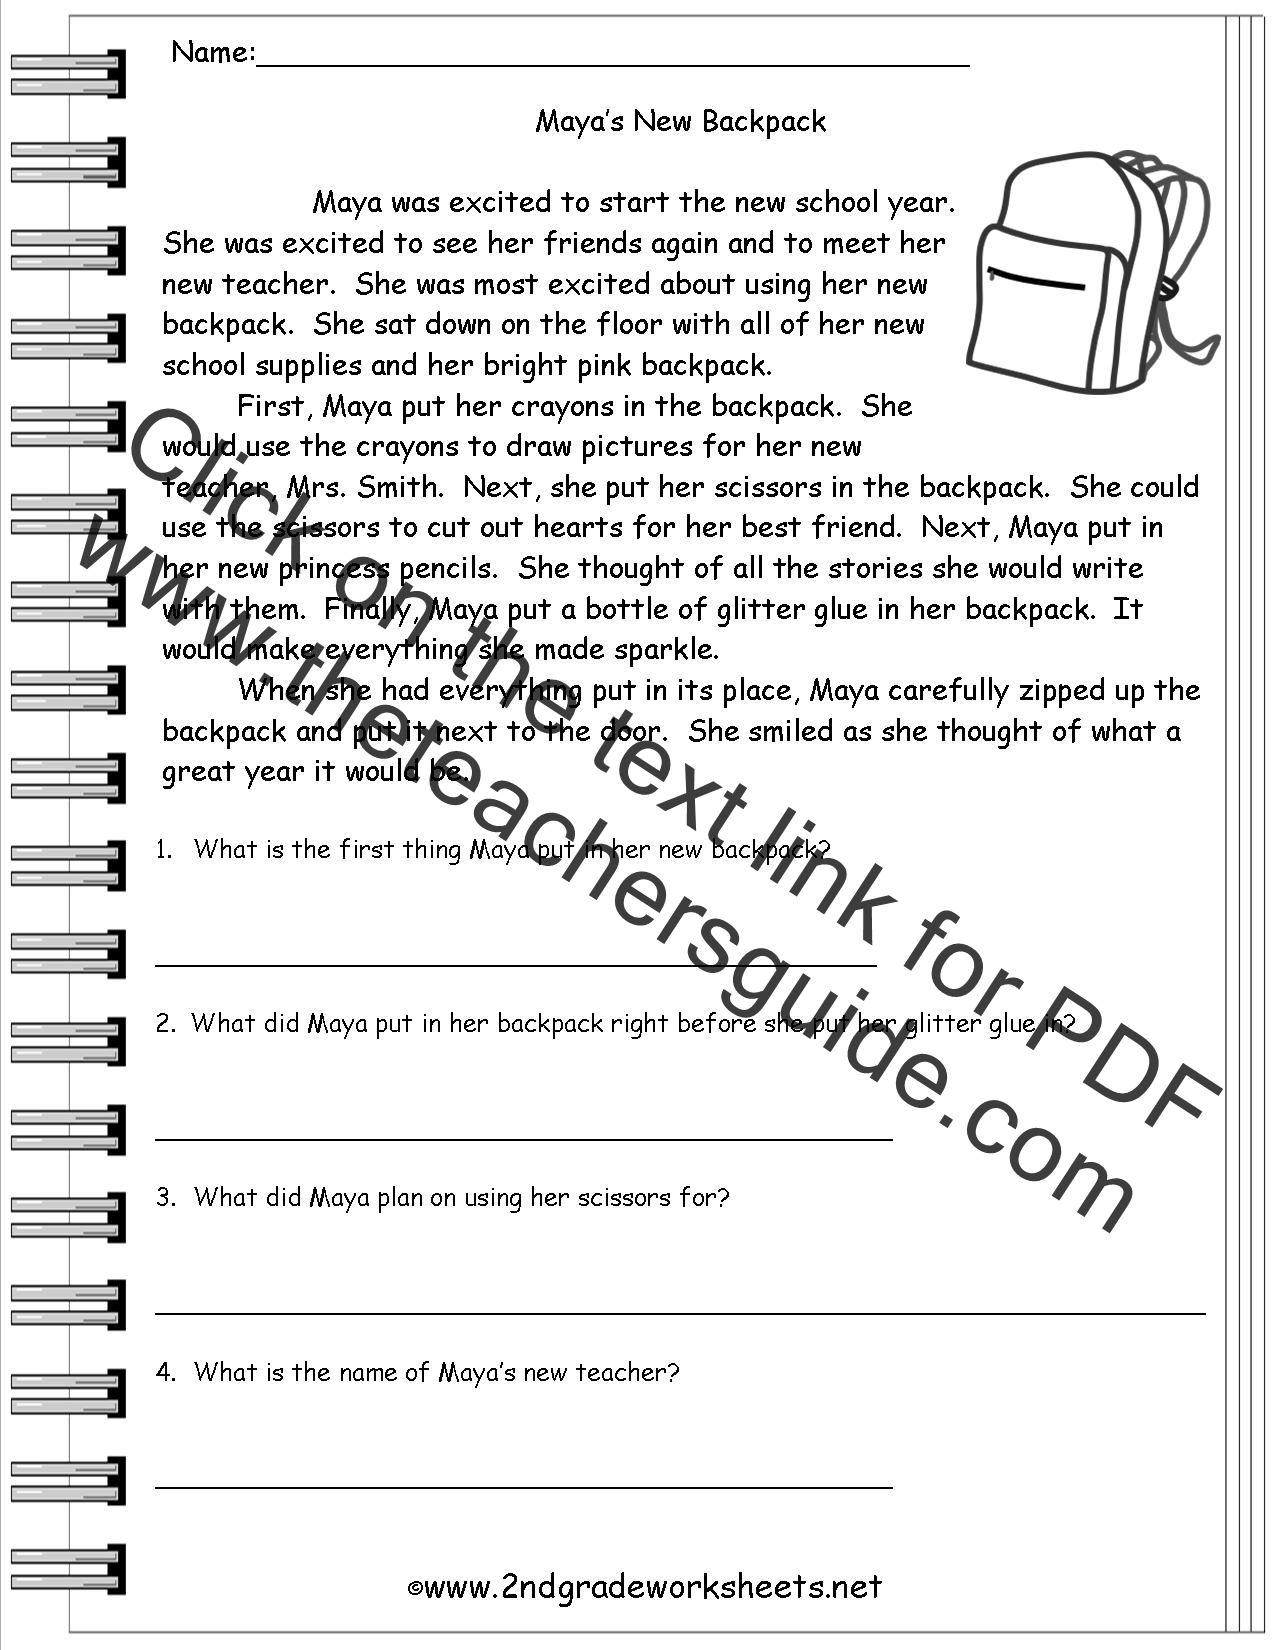 Worksheet Stories For Grade 2 worksheet 2nd grade reading stories noconformity free worksheeets literature worksheets